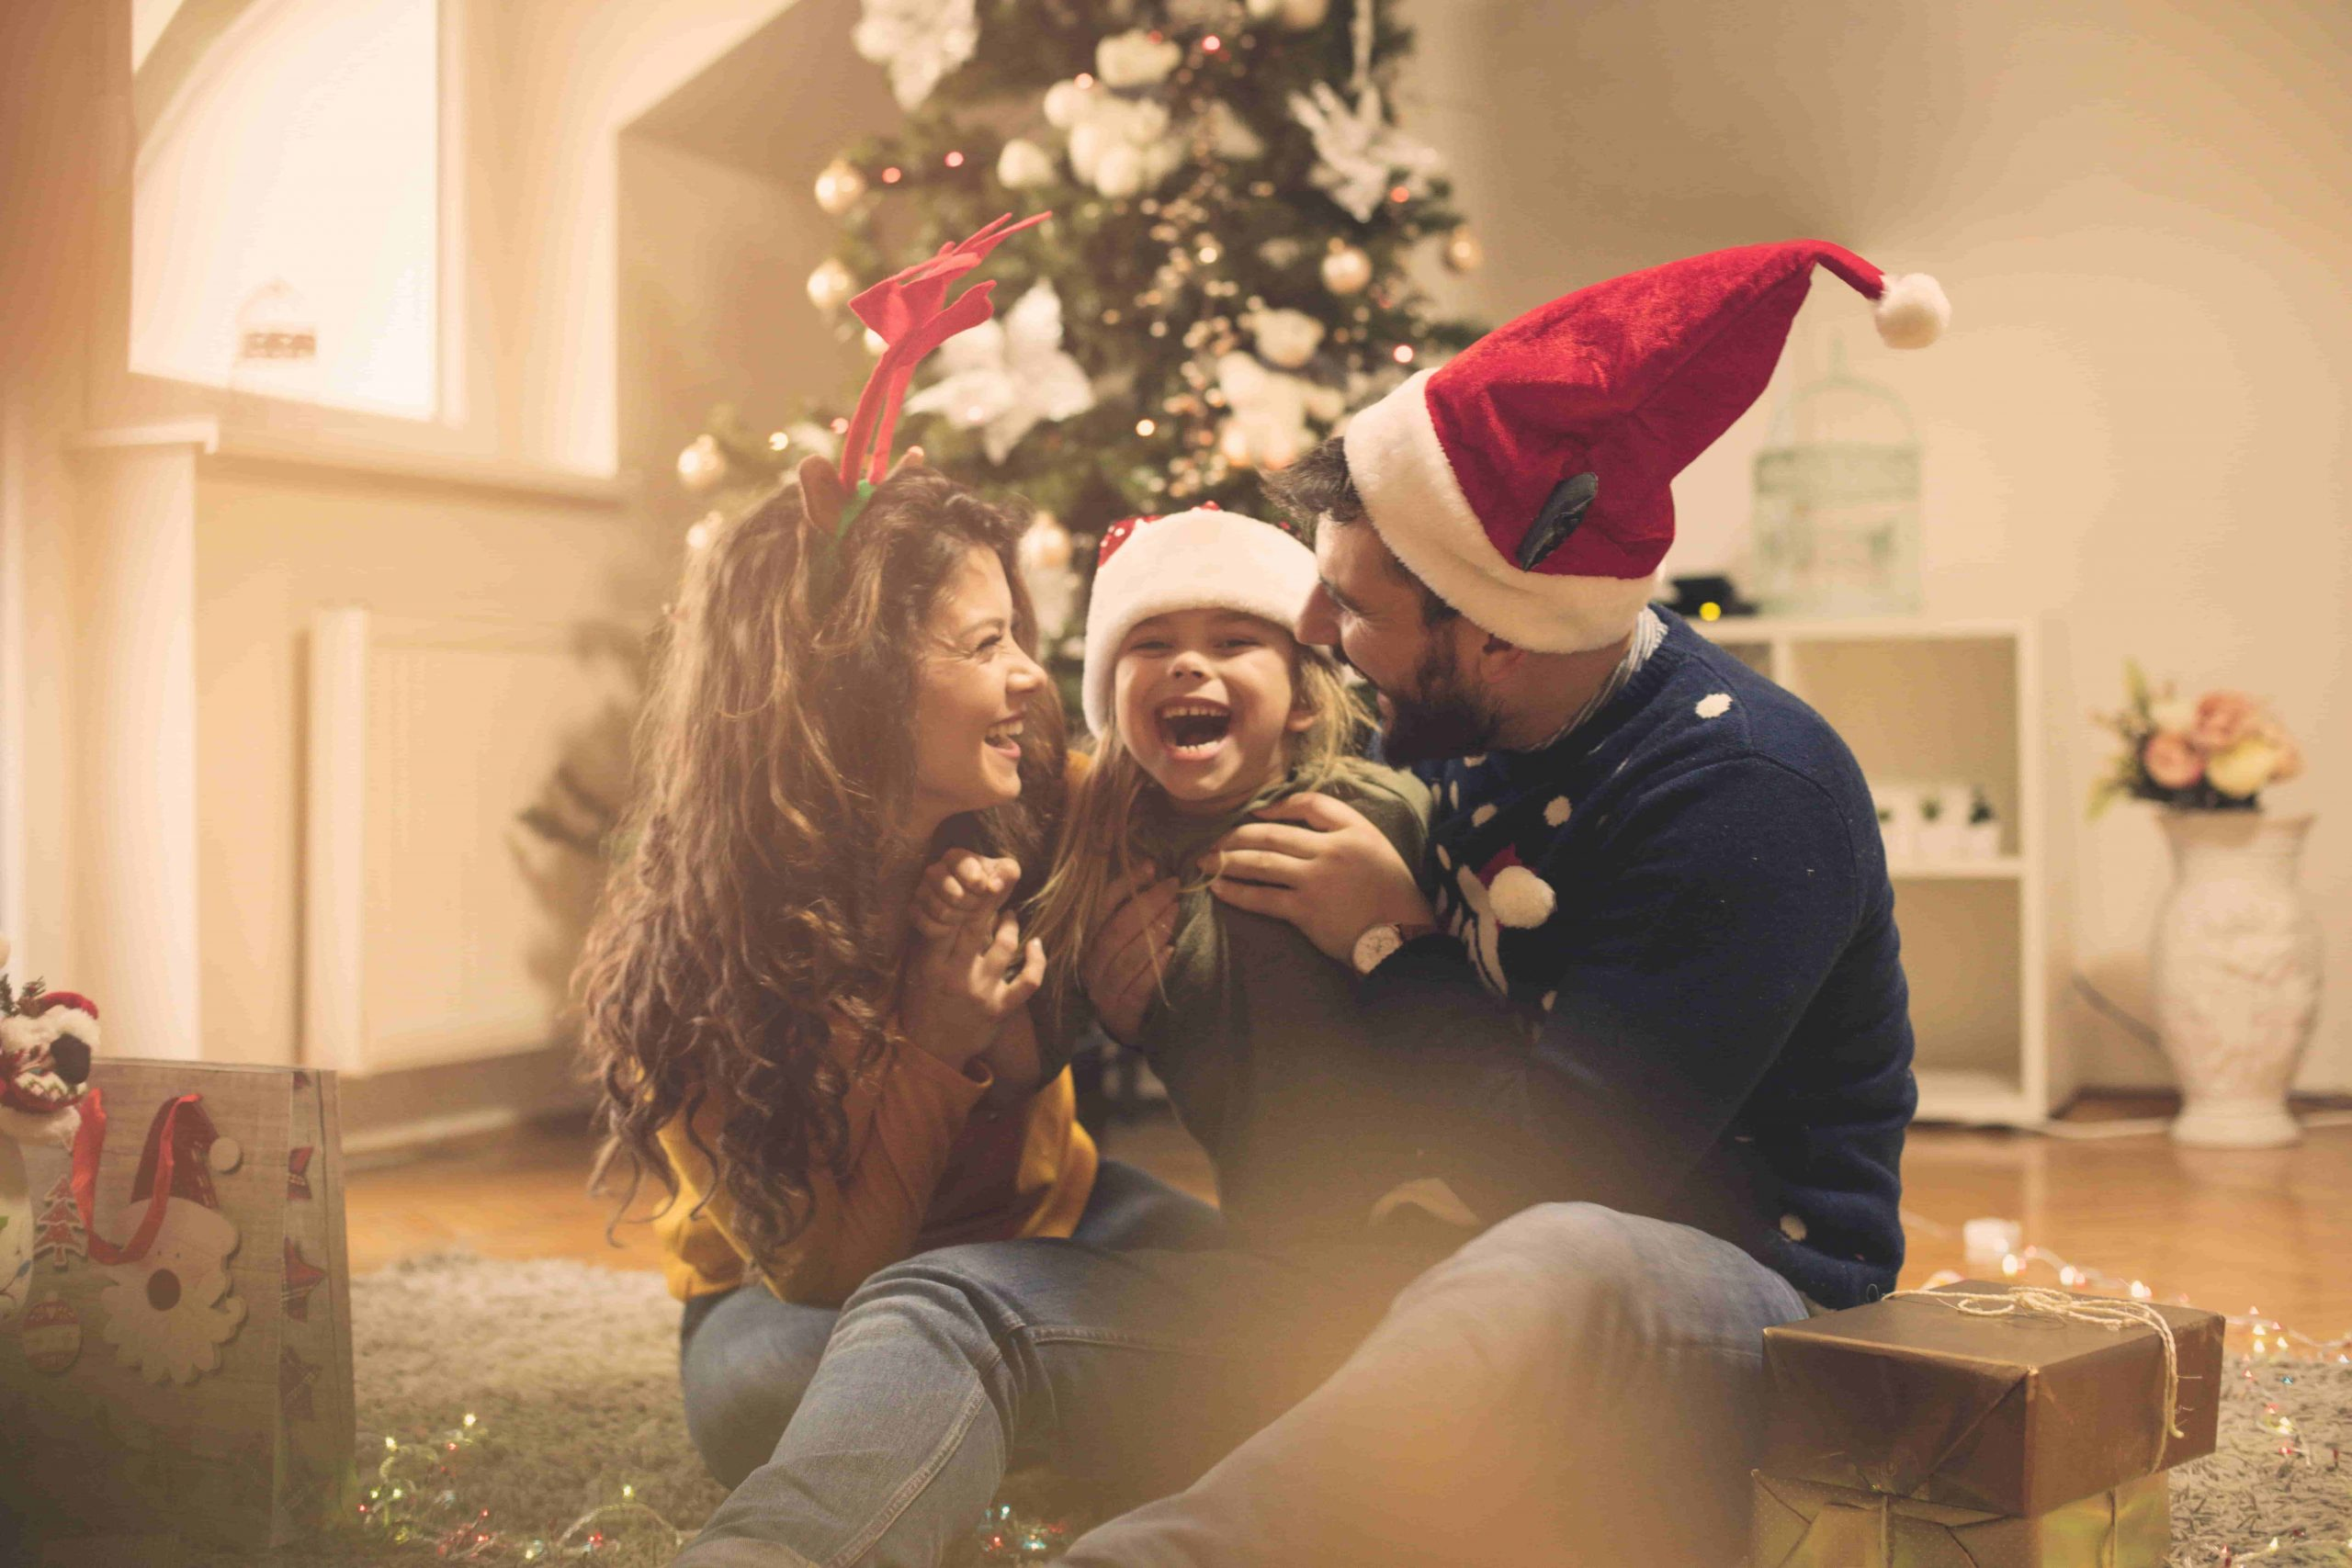 Parents hugging their little daughter near the Christmas tree and laughing